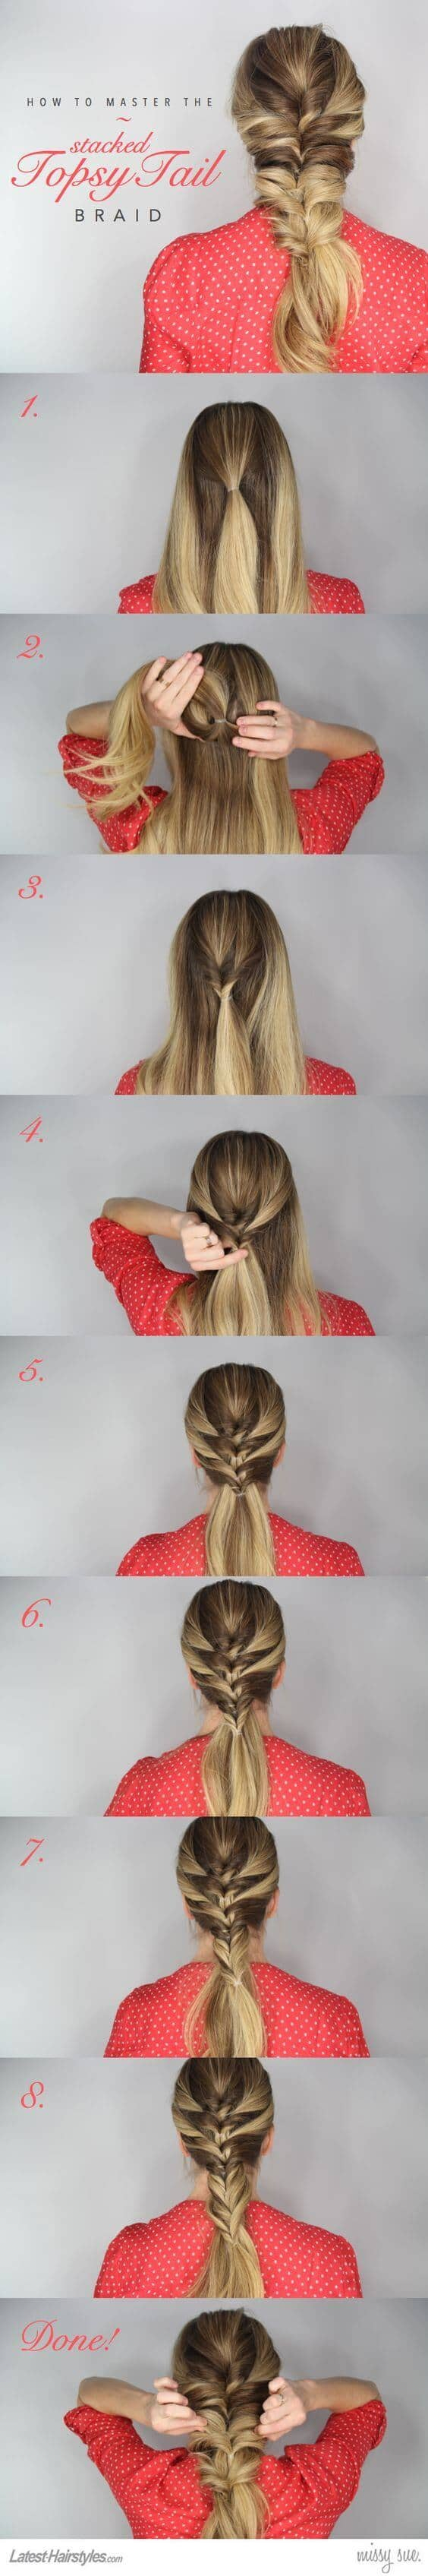 Trail Braid